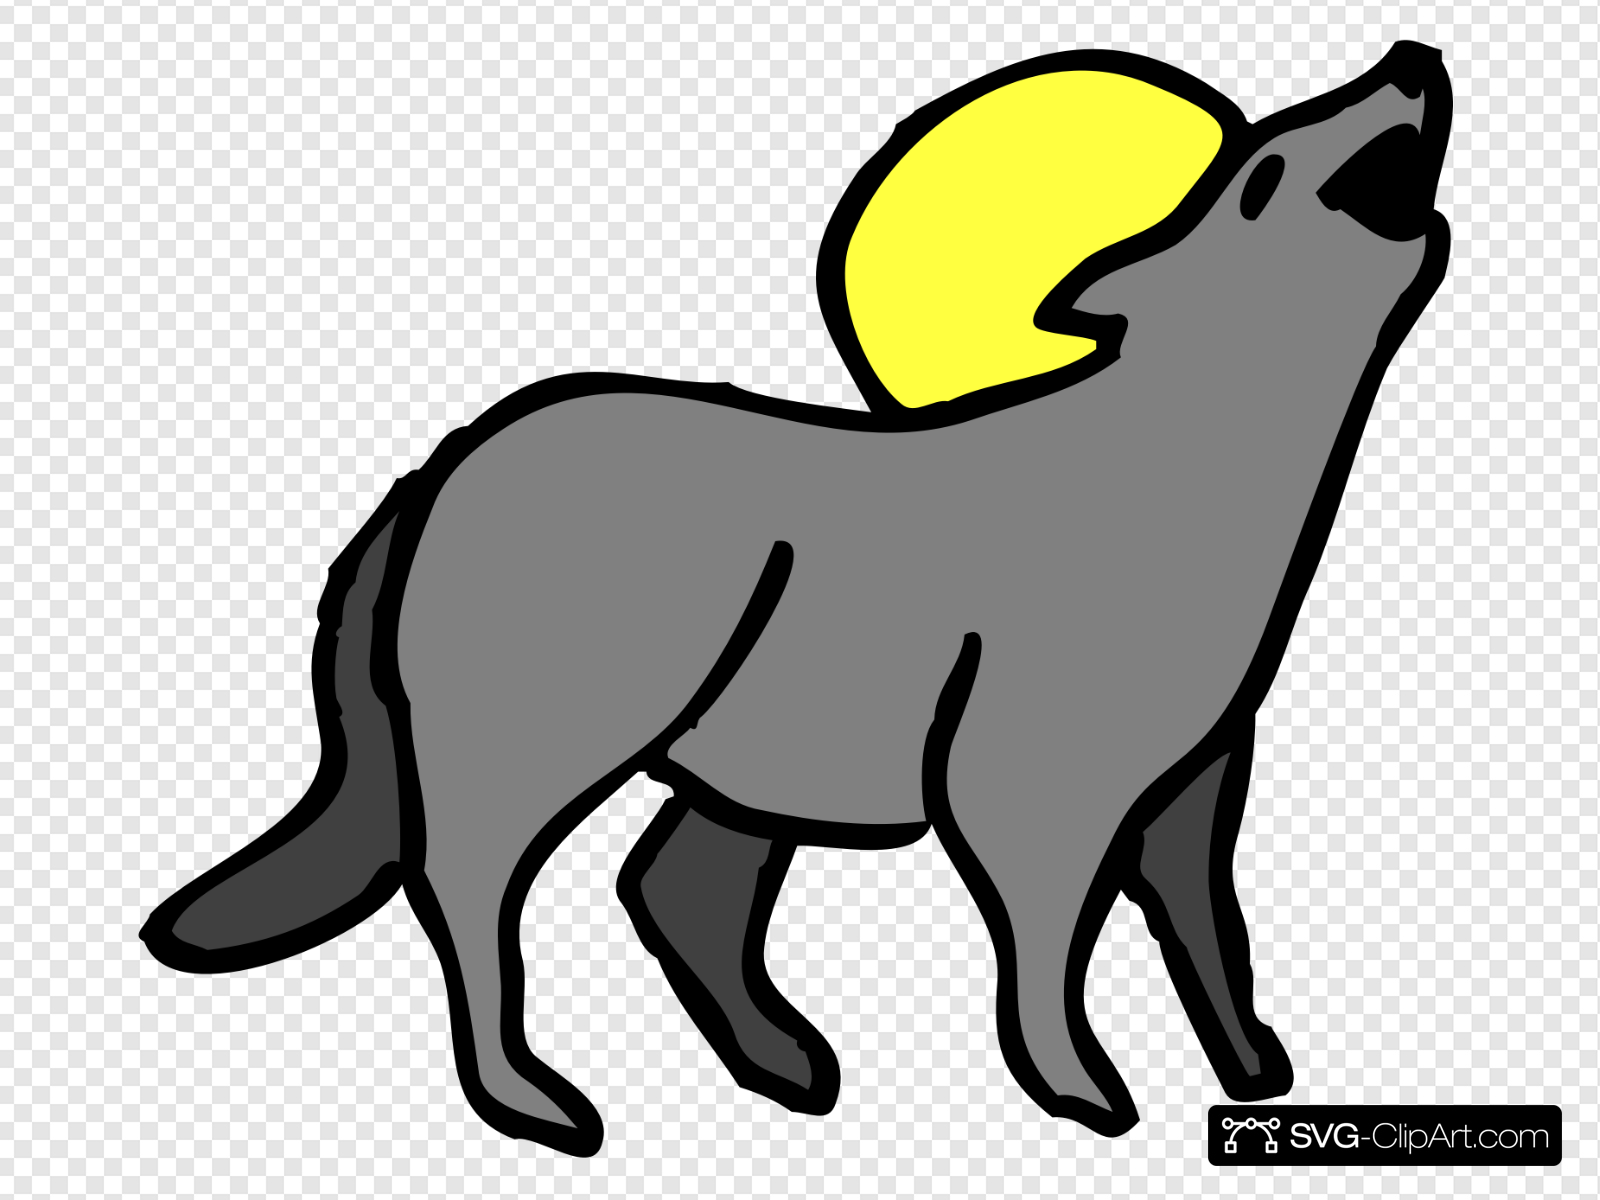 Howling Coyote Clip art, Icon and SVG.